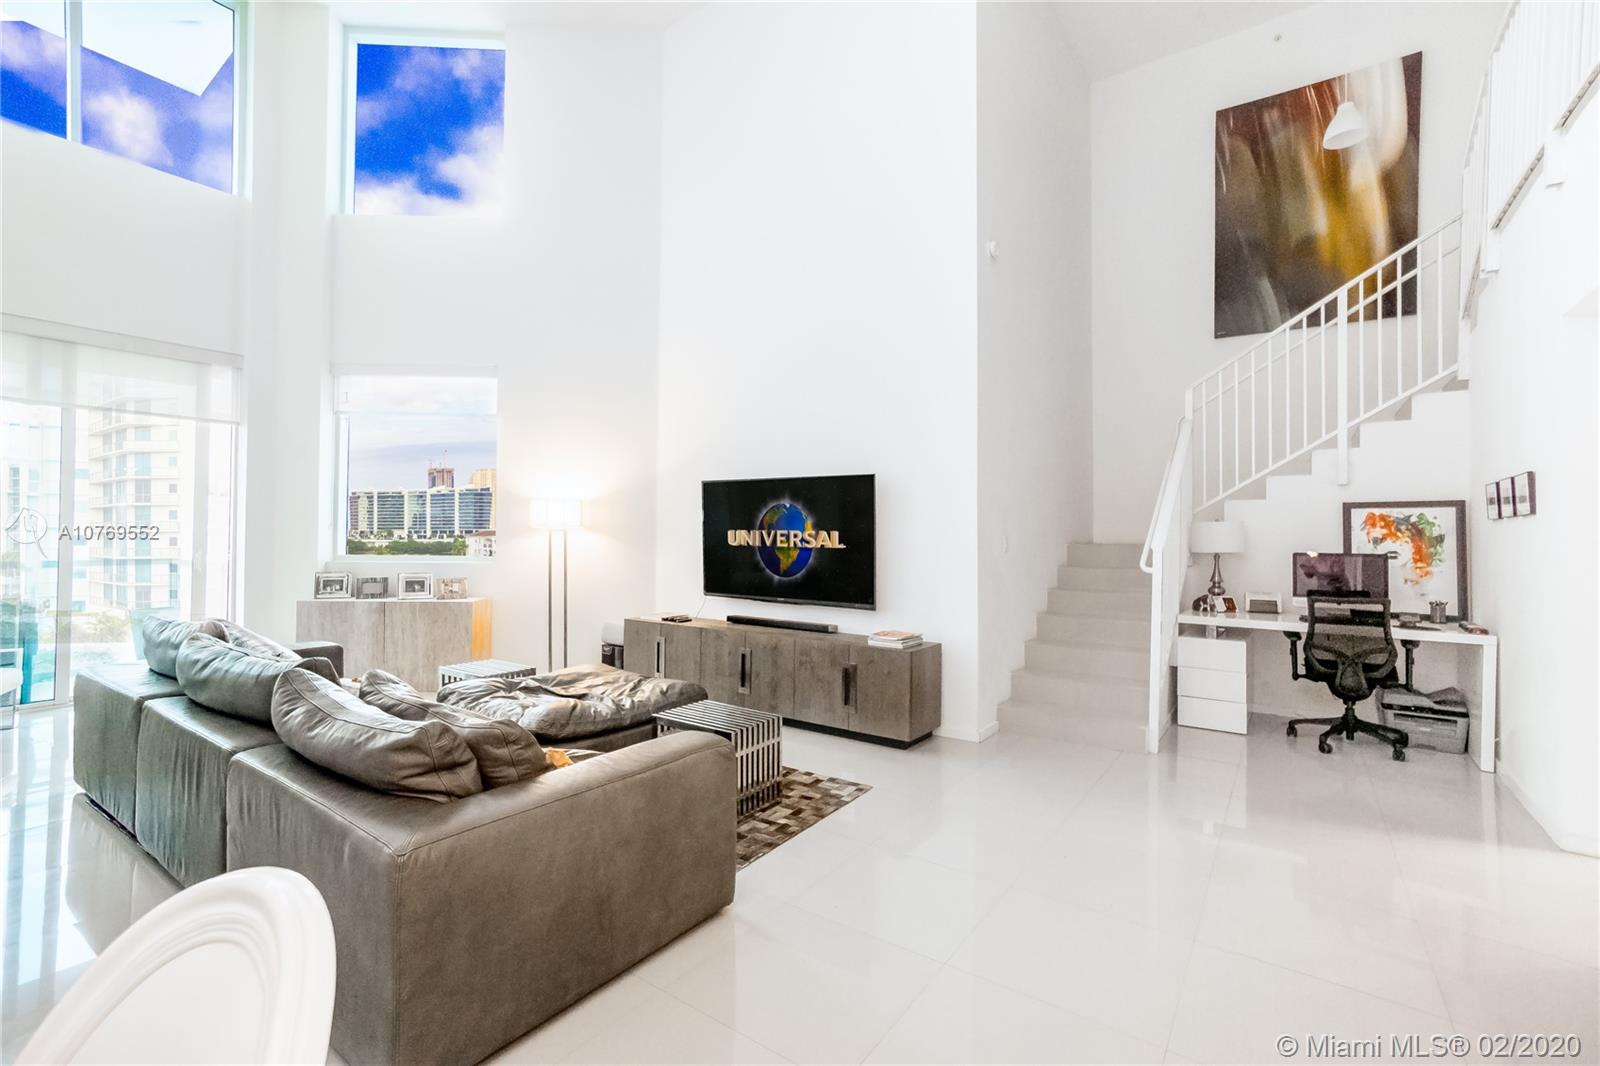 2 Story- Loft  Style  -2,360 SF  Facing the Parc and the bay  with a large terrace for entertaining .2 bedrooms+1 den (Can be easily converted into a 3 bed ) Contemporary Style. The property features  18 ft high ceilings,Porcelain floor, High end finishes .Boutique Building includes  the security, an outdoor pool with sundeck, state-of-the-art spa and fitness centers, concierge, covered terraces, clubhouse with lounge, along with three  elevators.3030 Aventura  is steps away from Aventura's first charter elementary school,recreation center, Parc , Shopping center and Aventura Mall.2 Parking spaces assigned. Internet & cable are included on the maintenance fees .